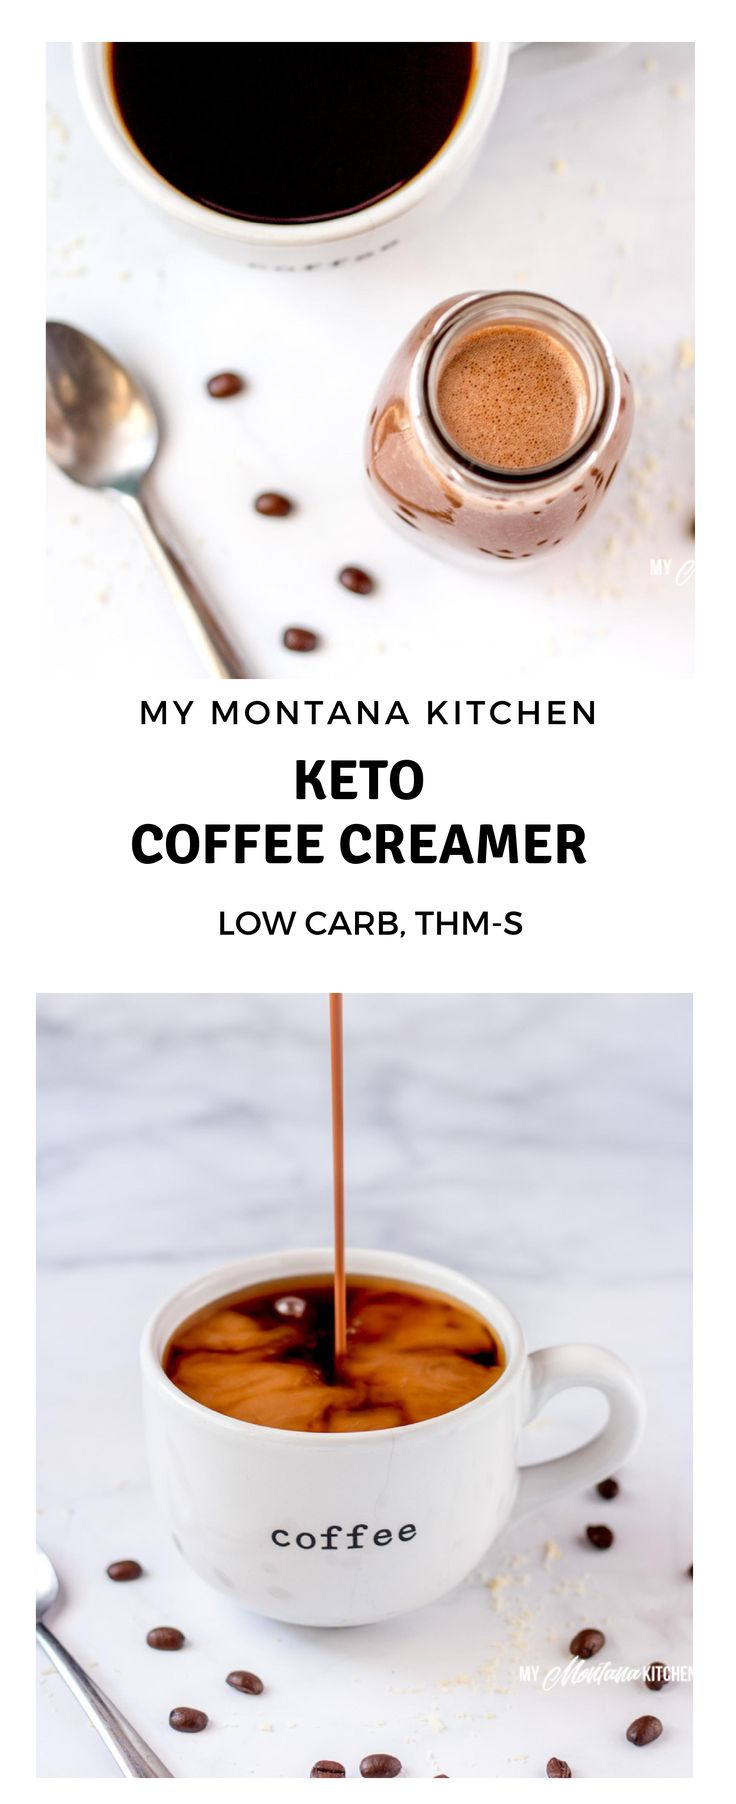 If you are missing coffee creamer on your keto diet, I